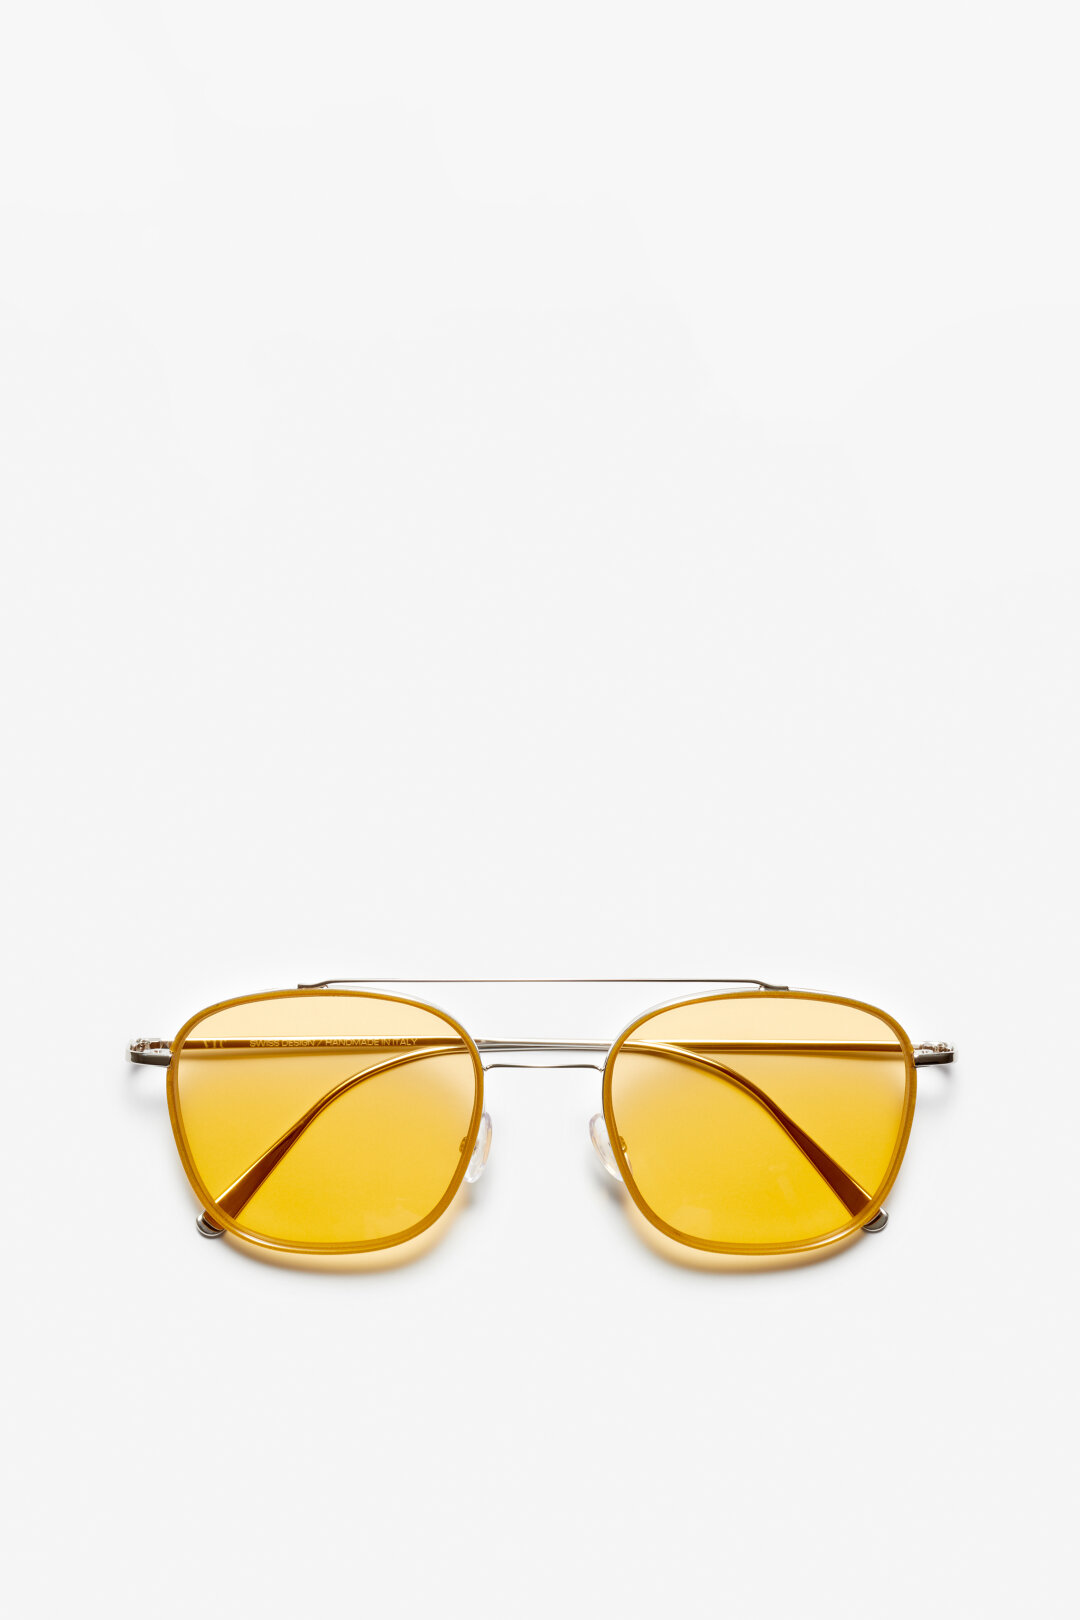 Closed x VIU Lunettes de soleil unisex THE IDEALISTE